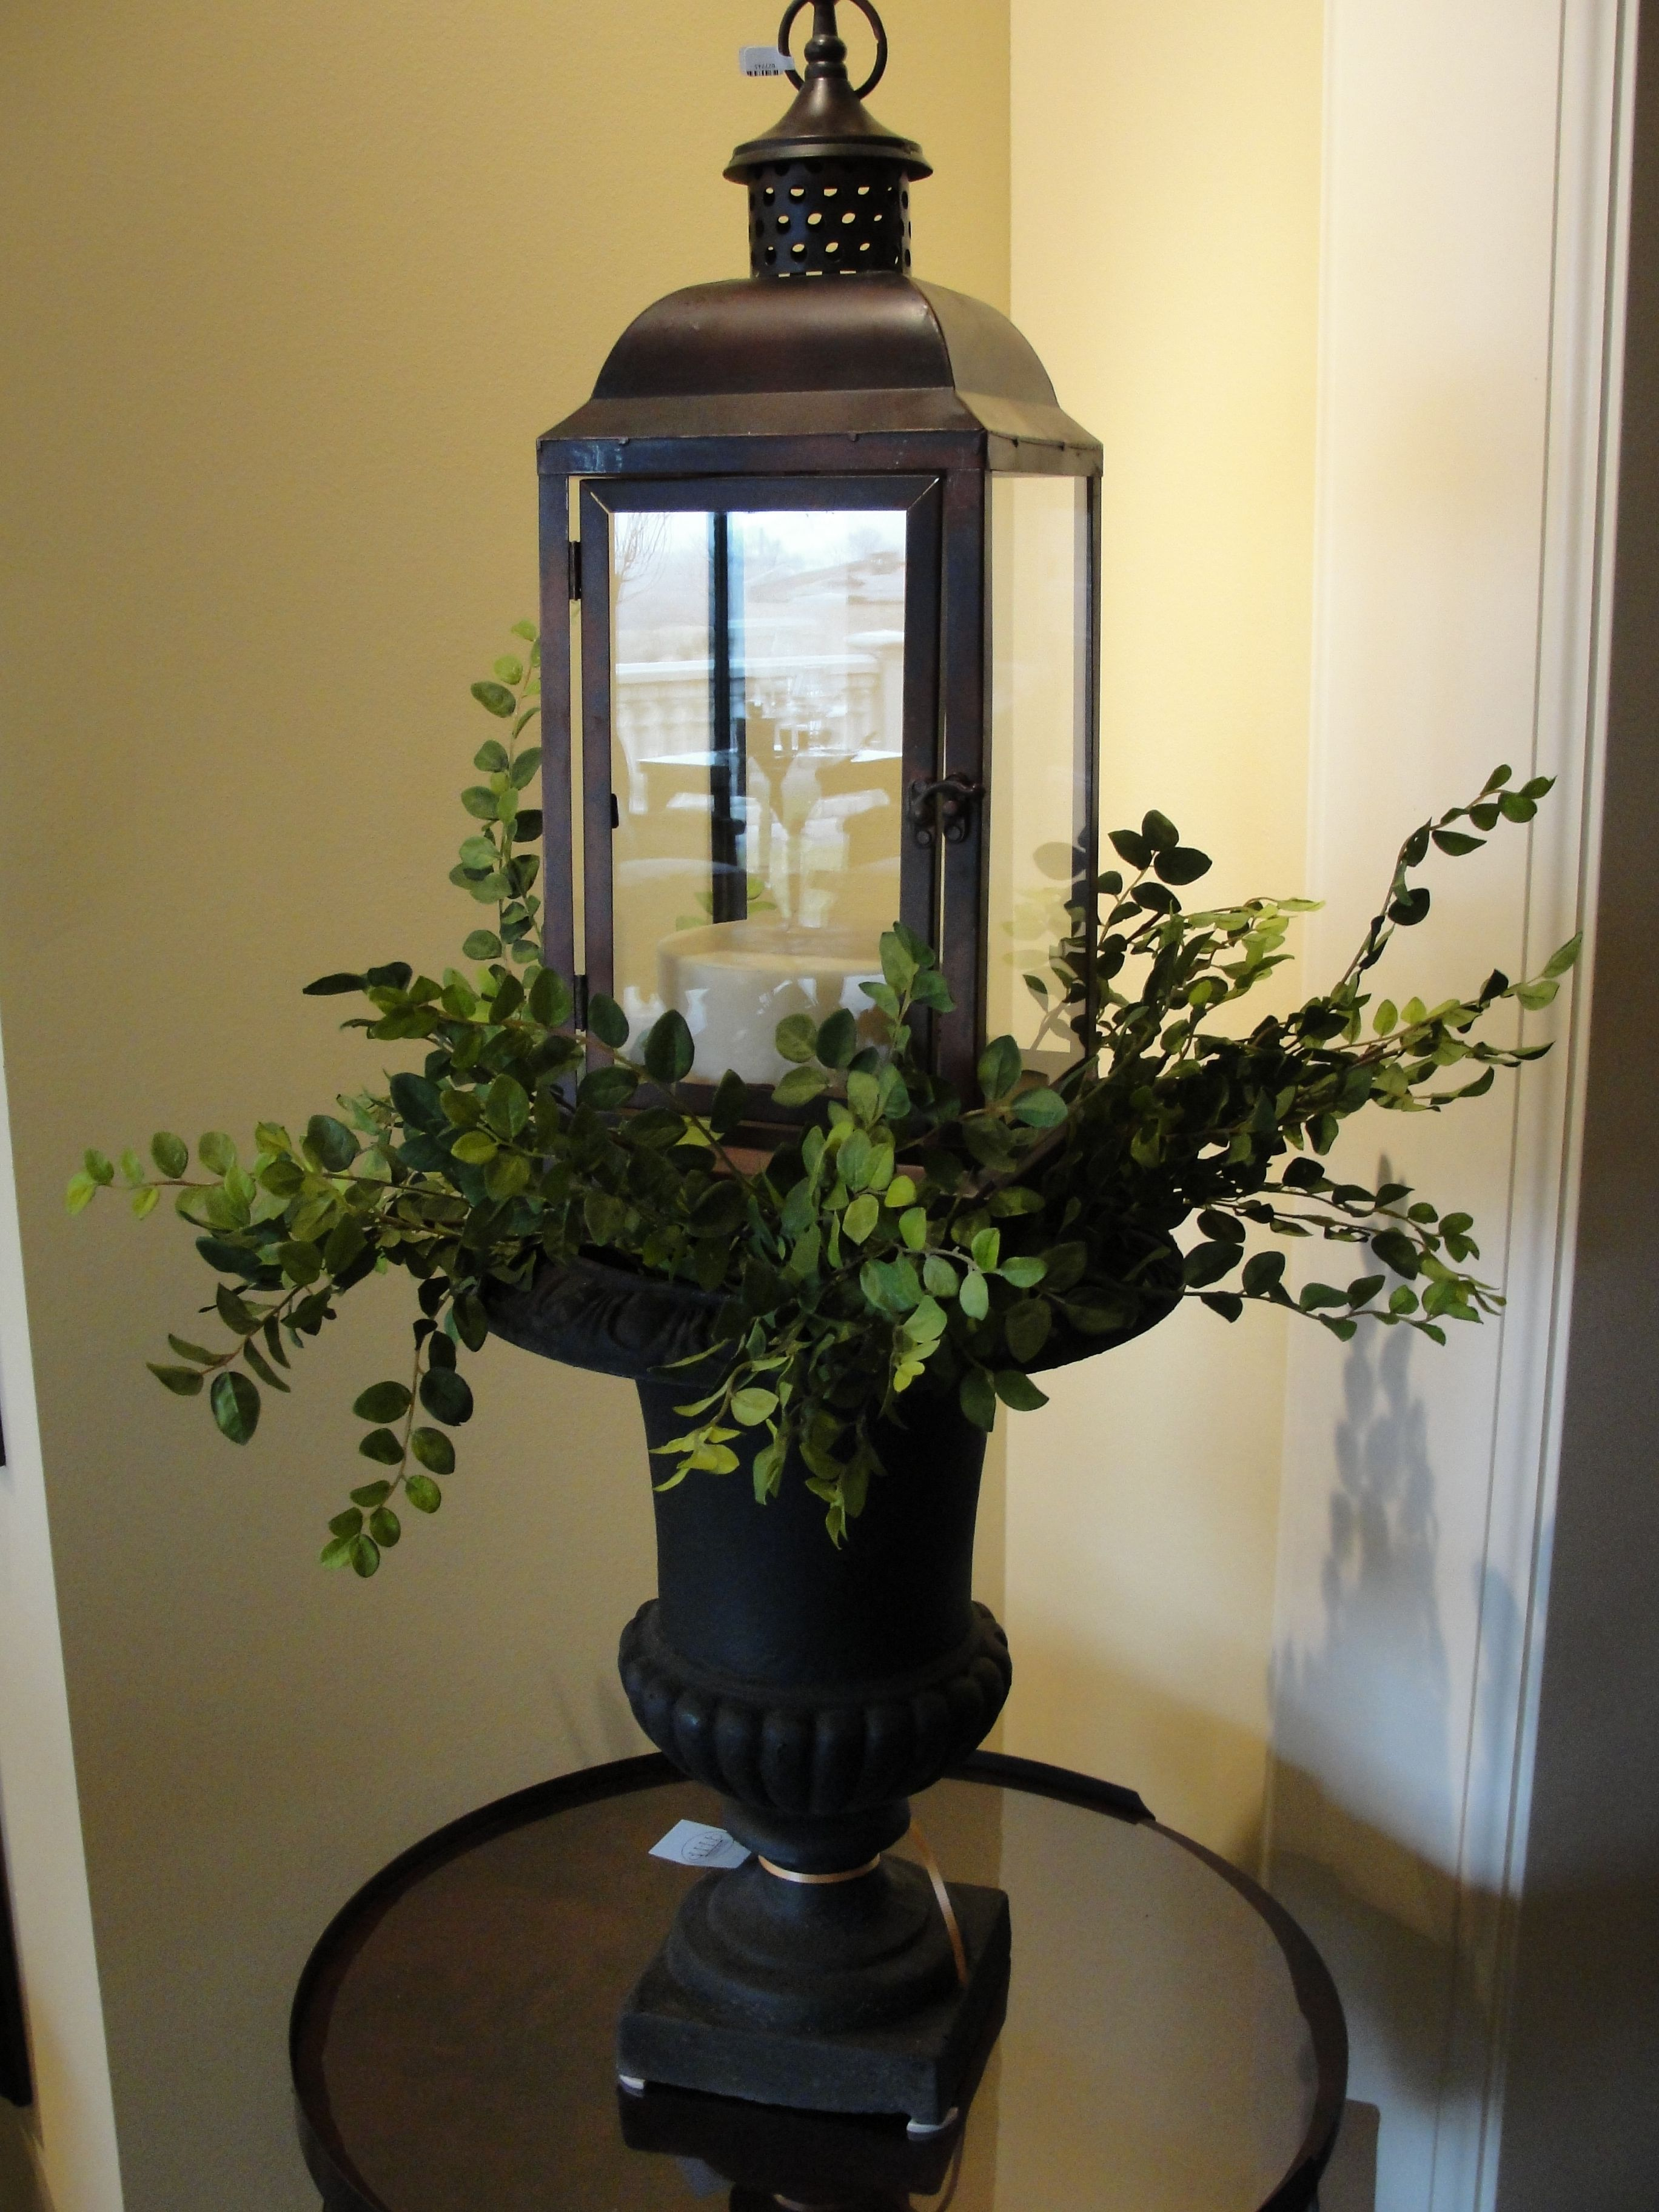 Lantern atop an urn with greenery o i have one like this